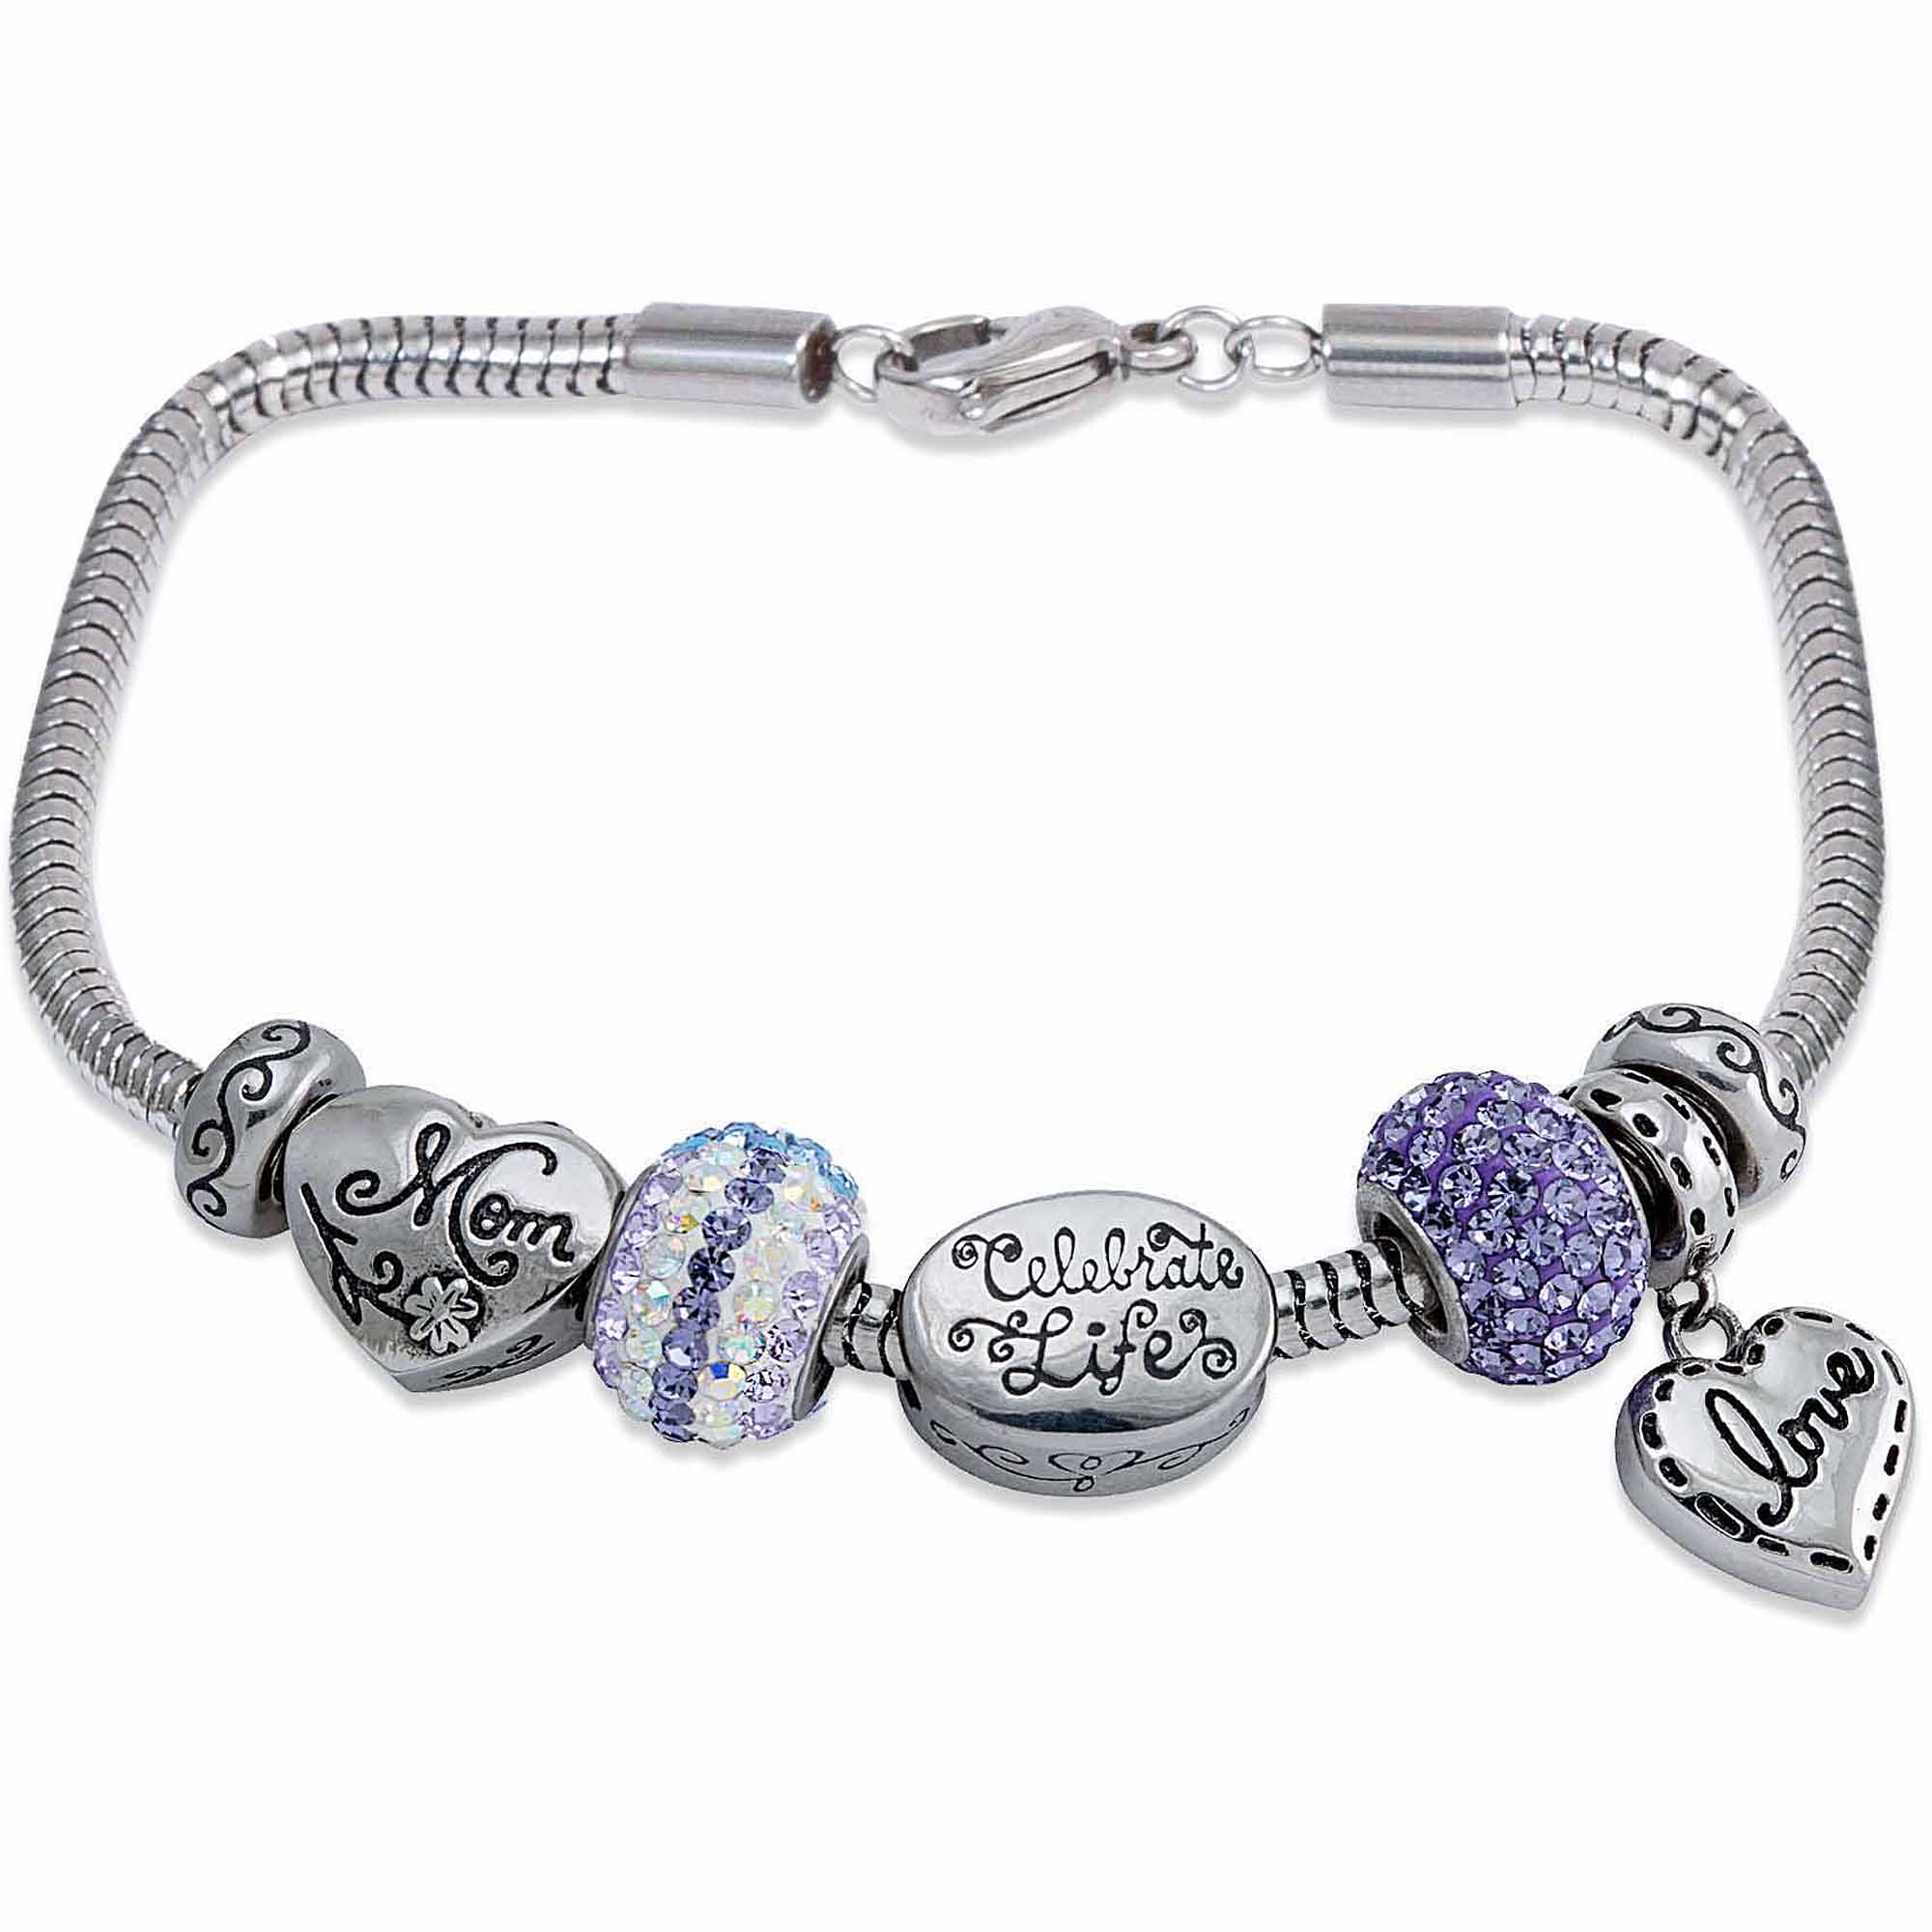 Connections from Hallmark Stainless Steel Limited Edition Mom Bracelet and Charm Pack